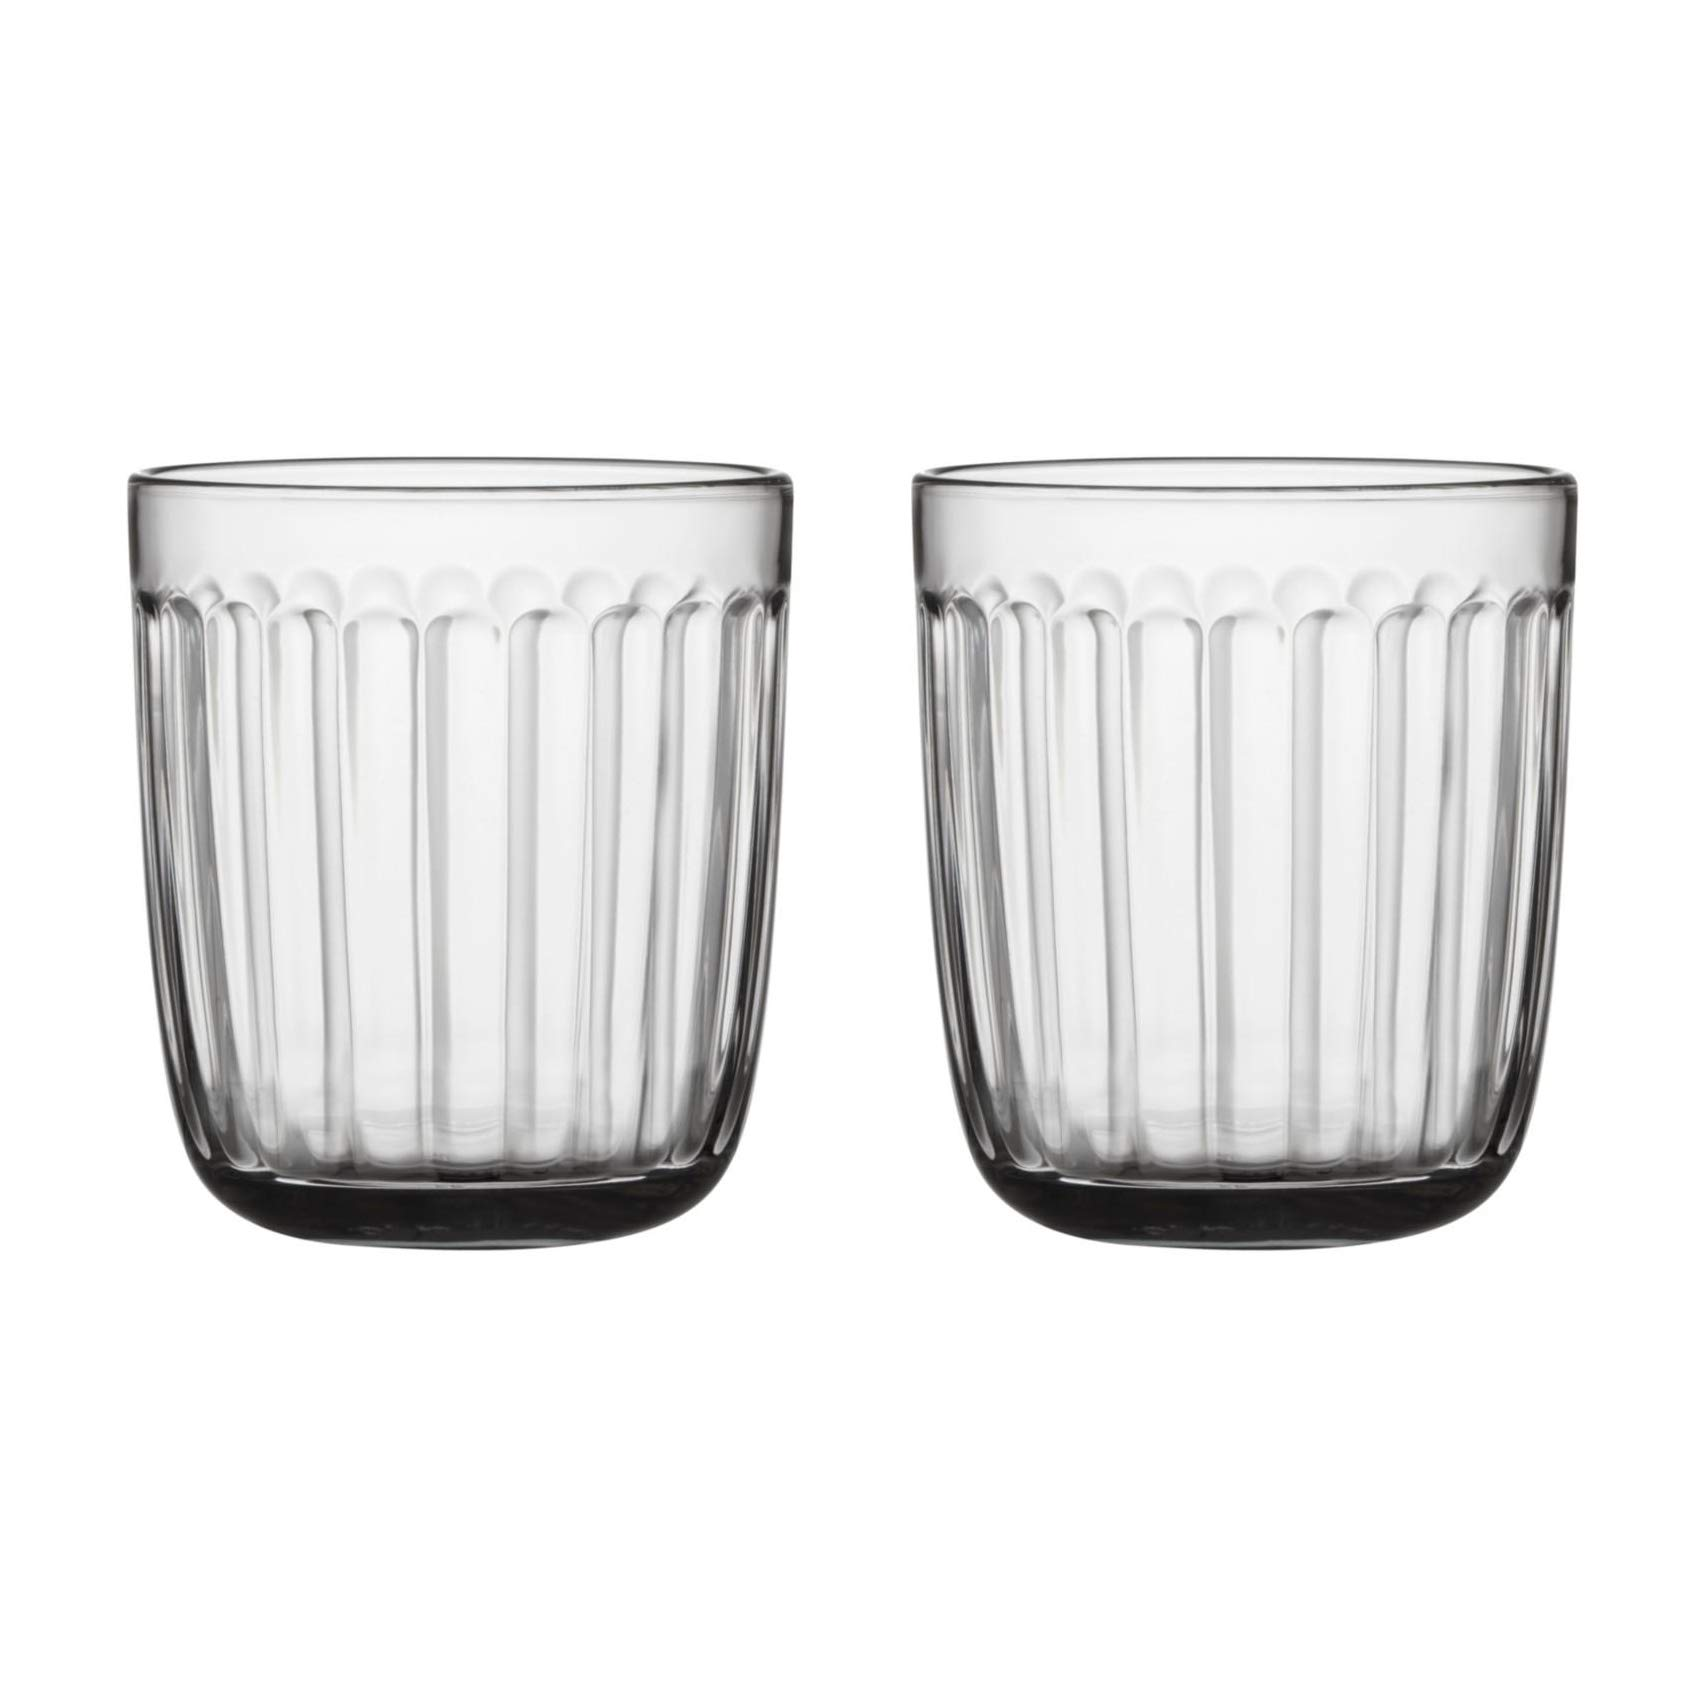 Iittala Raami 1026949 Water Glasses by Iittala